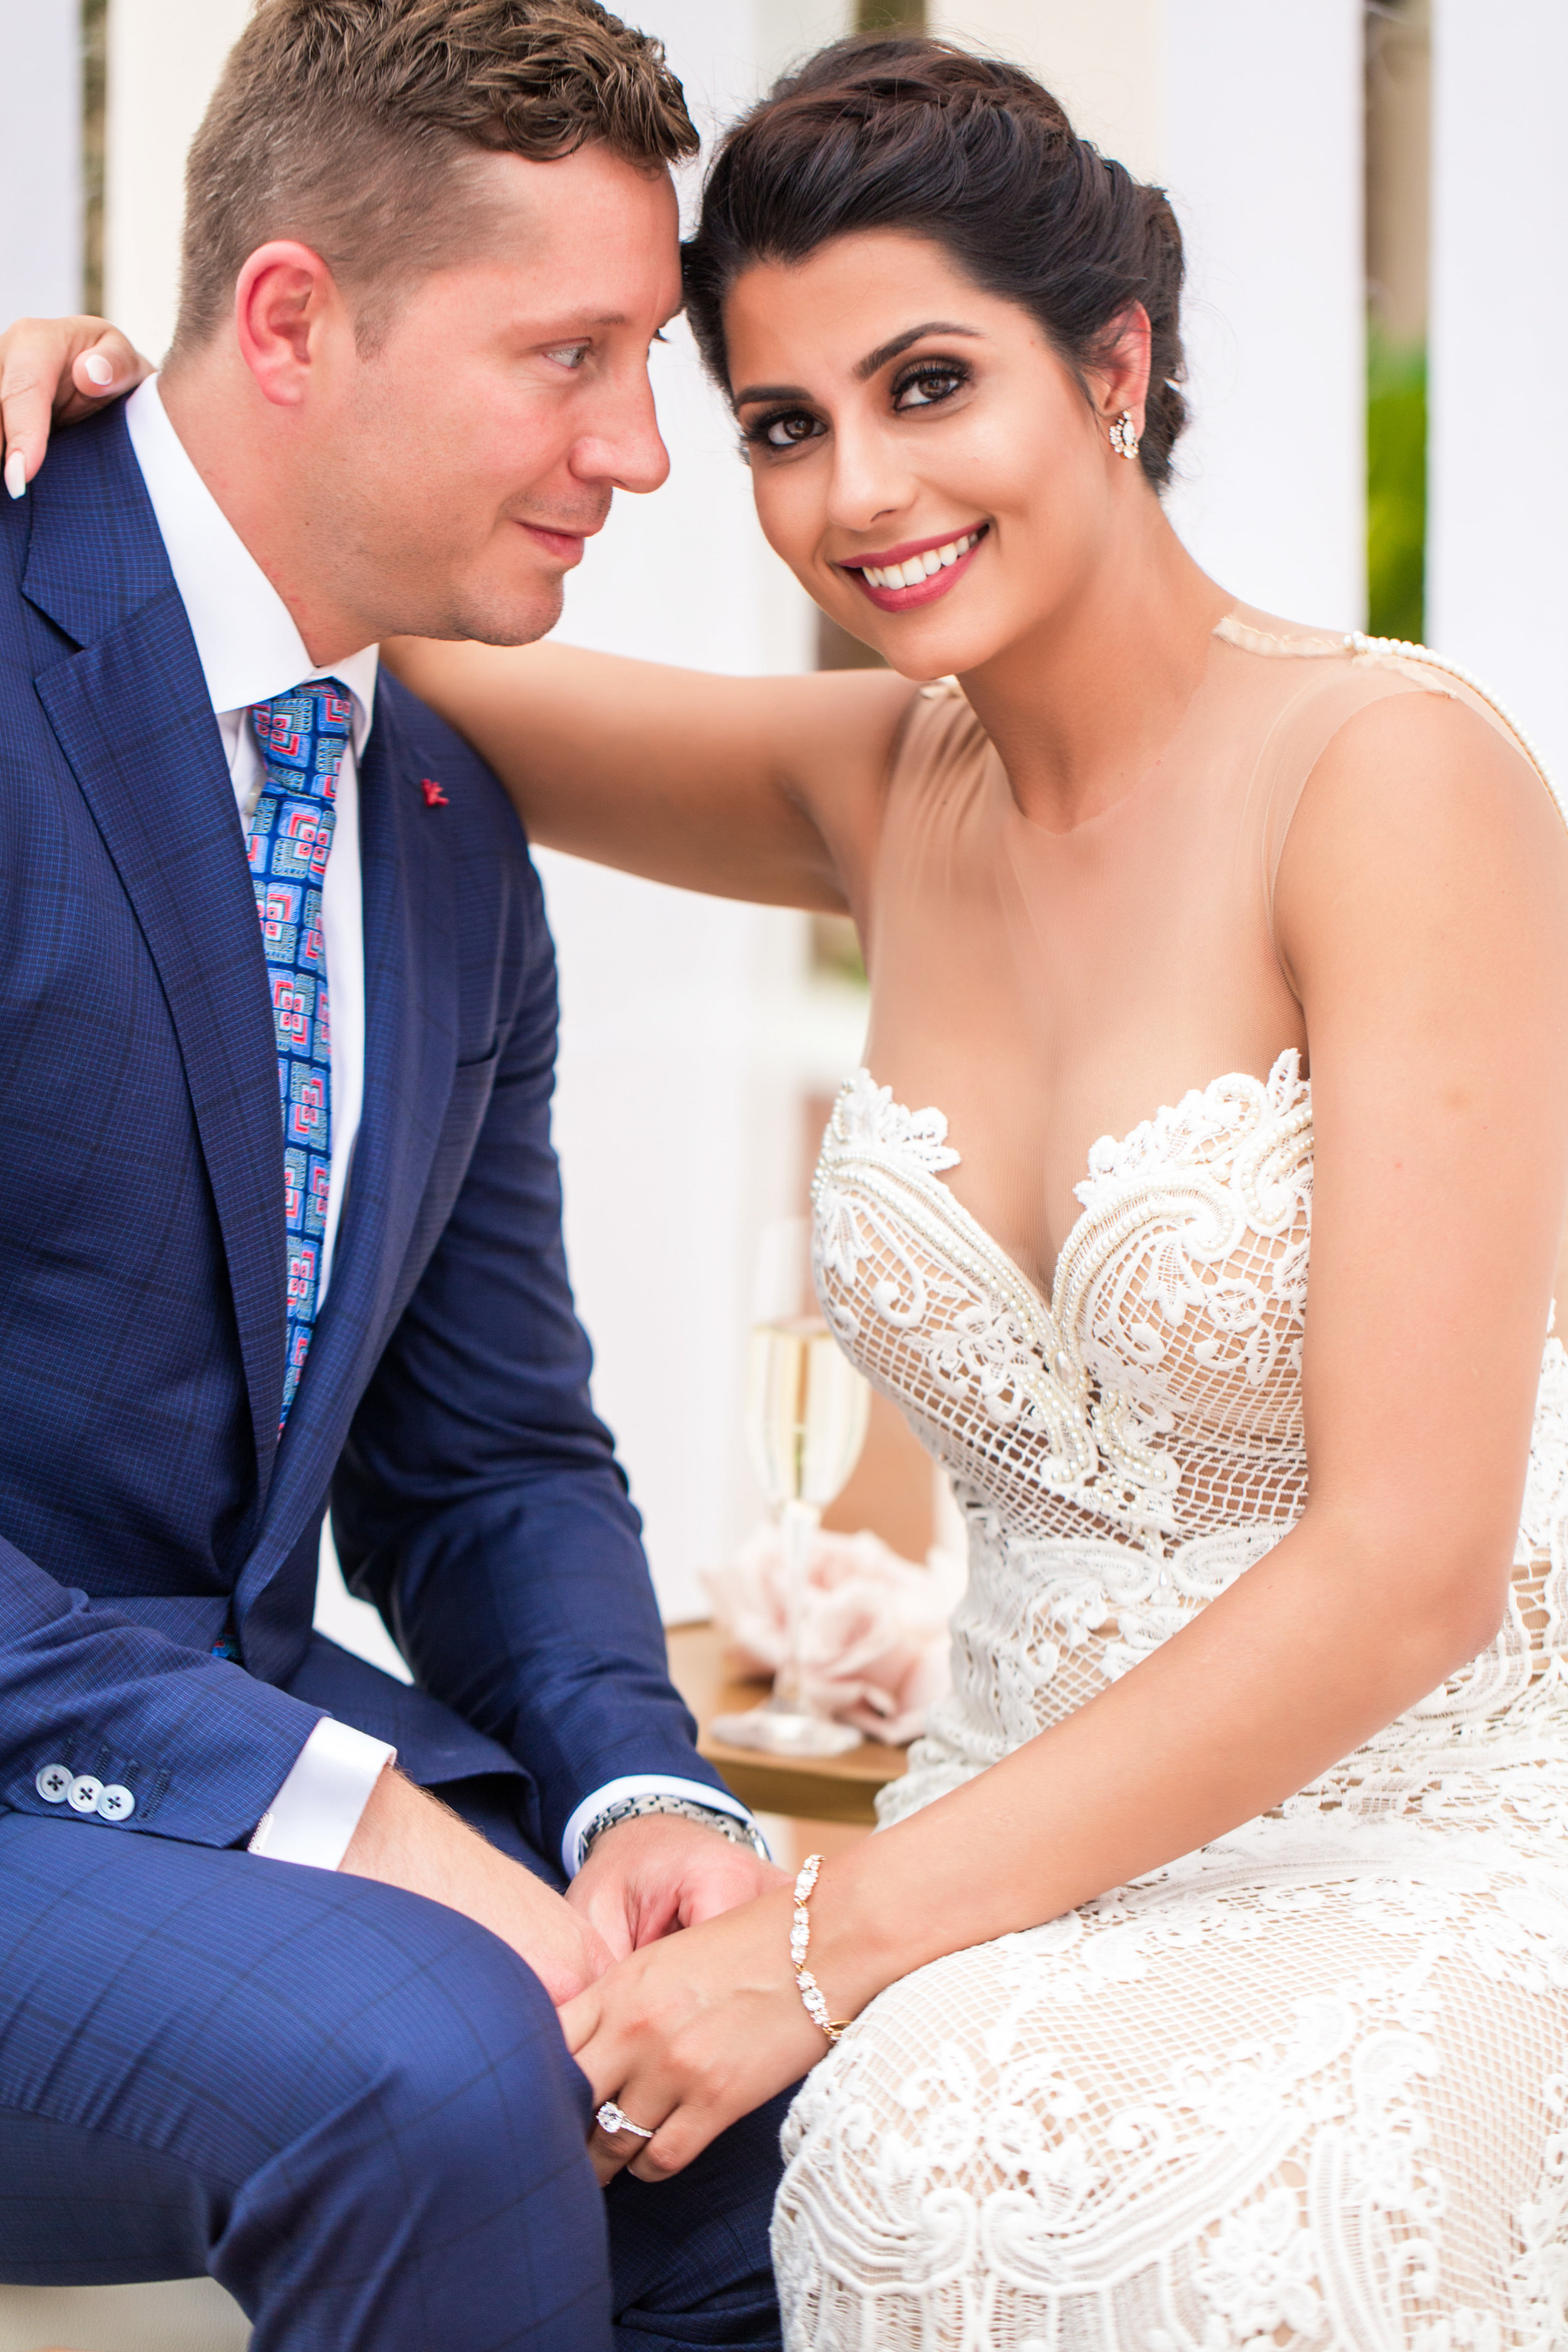 Groom in blue suit. Bride in Berta. Wedding Planning by  Andrea Eppolito Events  · Photography by  Shandro Photo   · Wedding Venue  Four Seasons Las Vegas  · Floral and Decor by  Destination by Design  · Cake by  Four Seasons Las Vegas  · Chandeliers and Lighting by  LED Unplugged  · Dress by  Berta